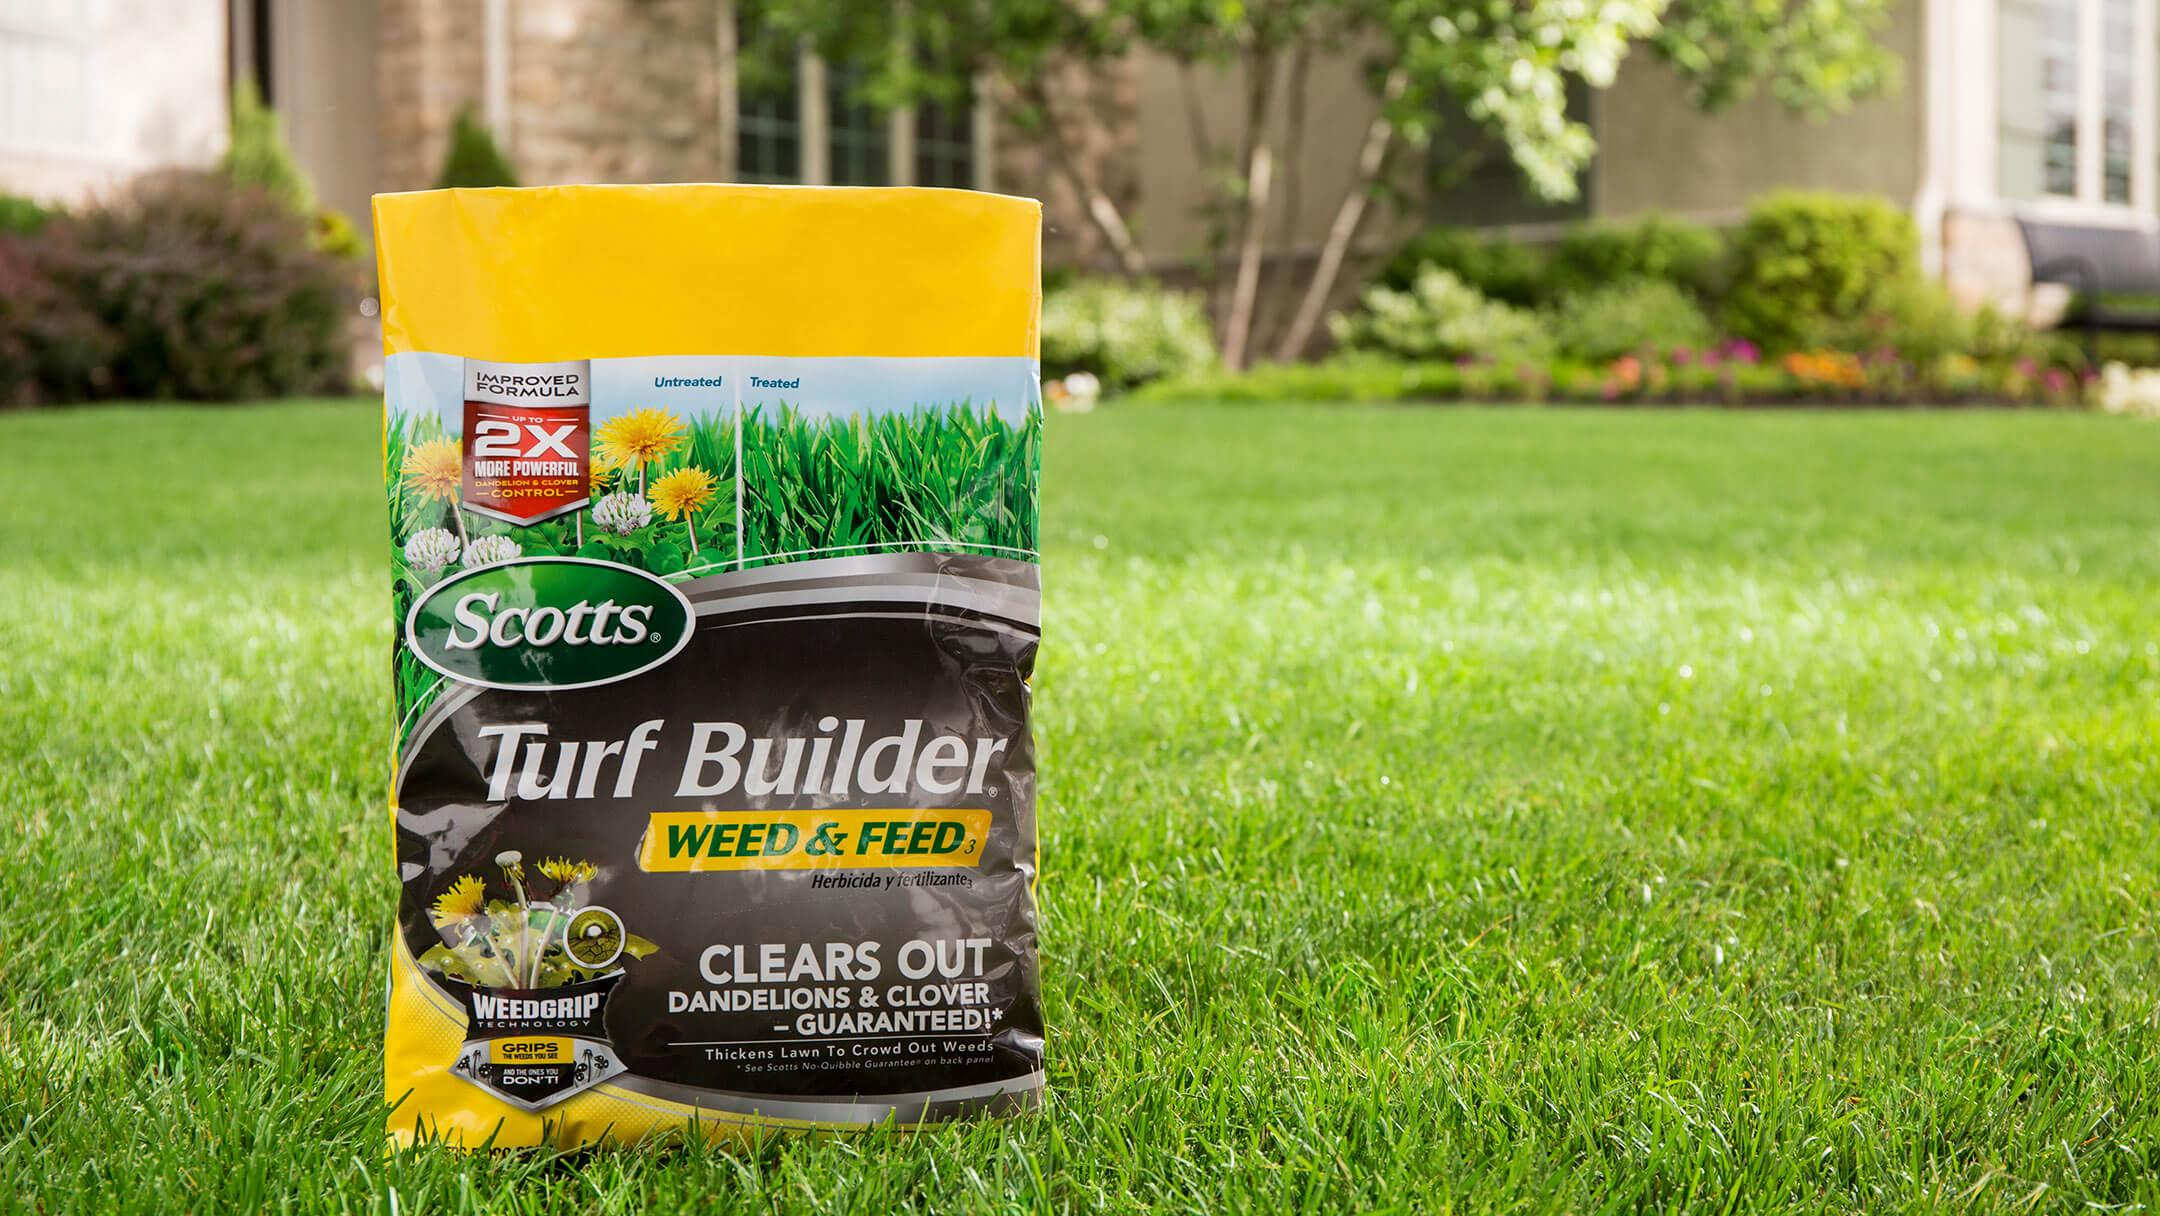 Scenic Feed Reviews Scotts Bonus S Home Depot Late Spring Want A Greener Timing Is Scotts Scotts Bonus S Weed houzz-03 Scotts Bonus S